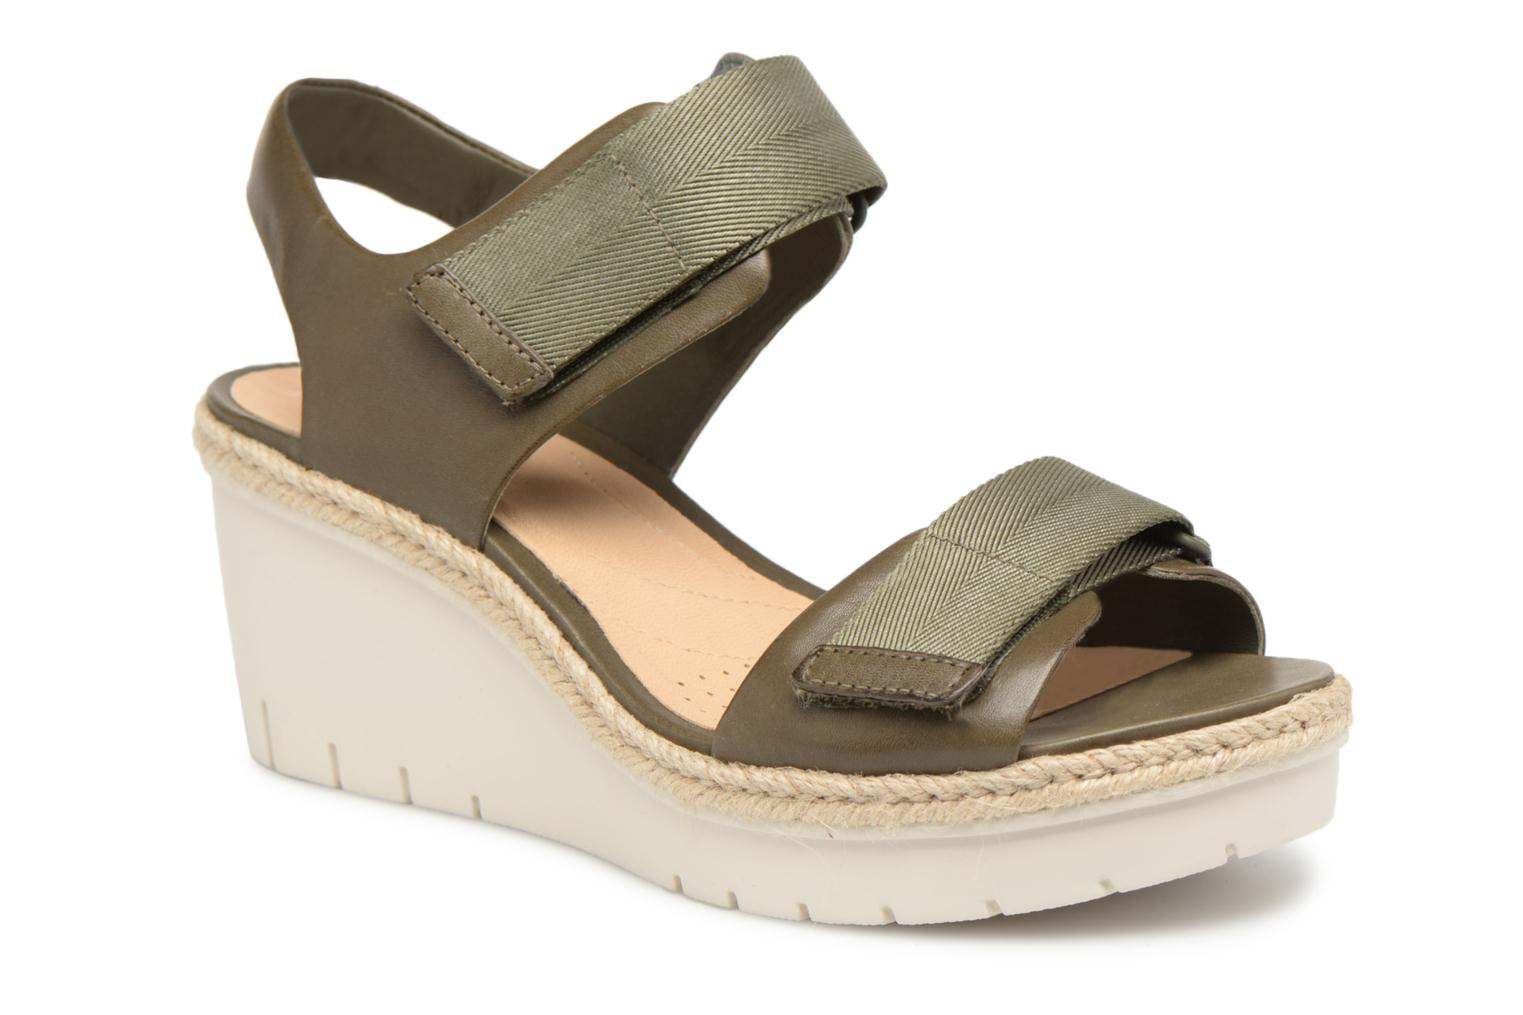 Marques Chaussure femme Clarks femme Palm Shine Khaki leather